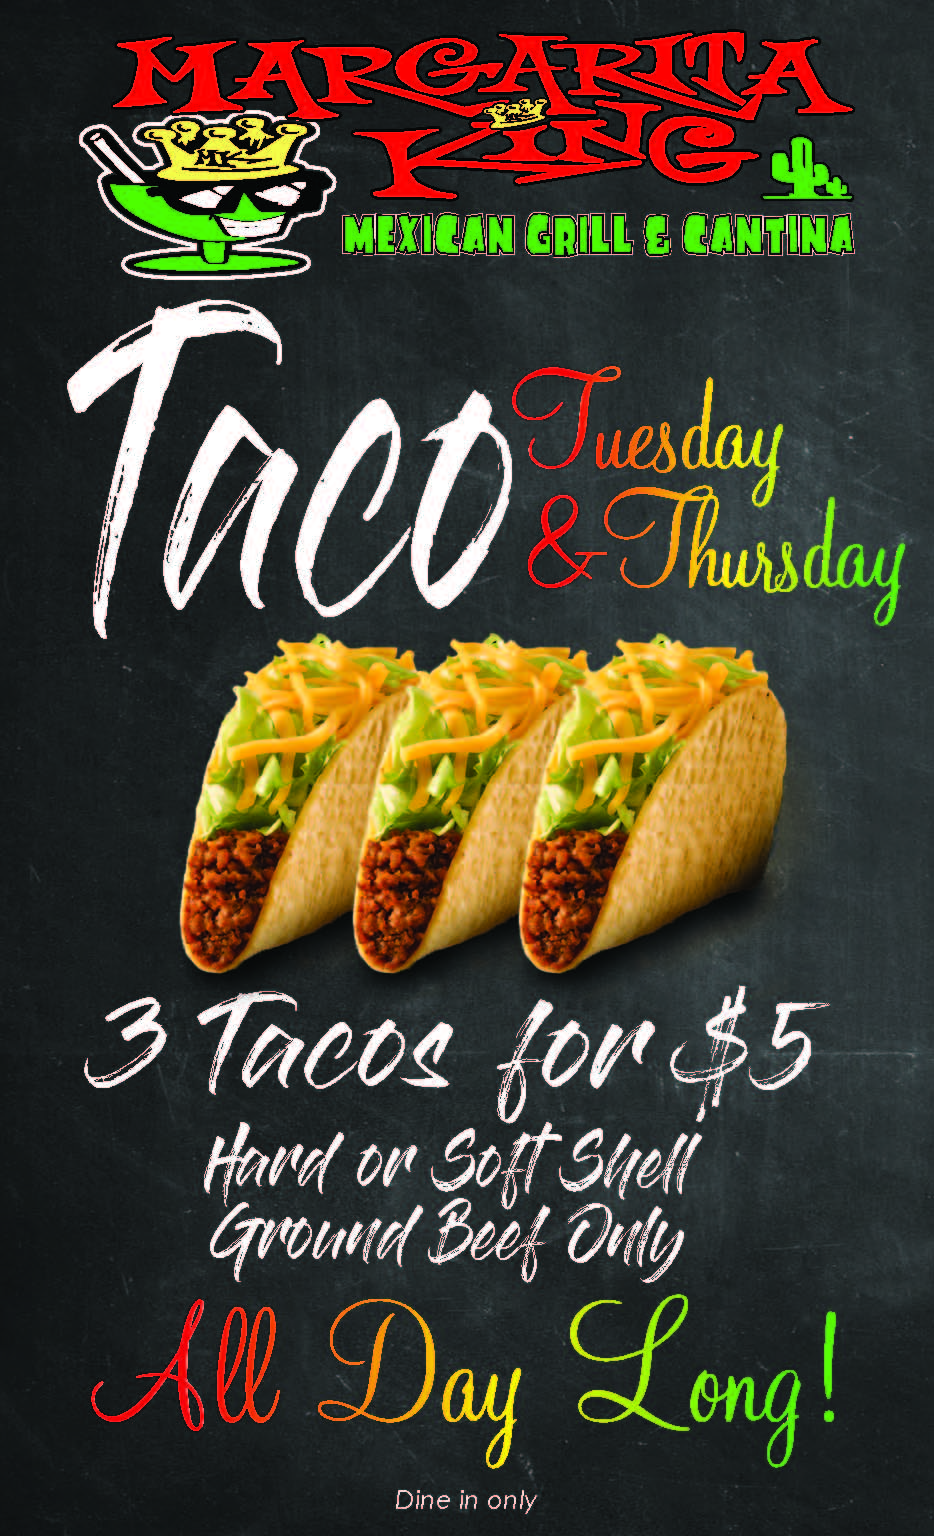 Taco tuesday & thursday: 3 tacos for $5. Hard or soft shell, ground beef only, all day long! Dine in only.